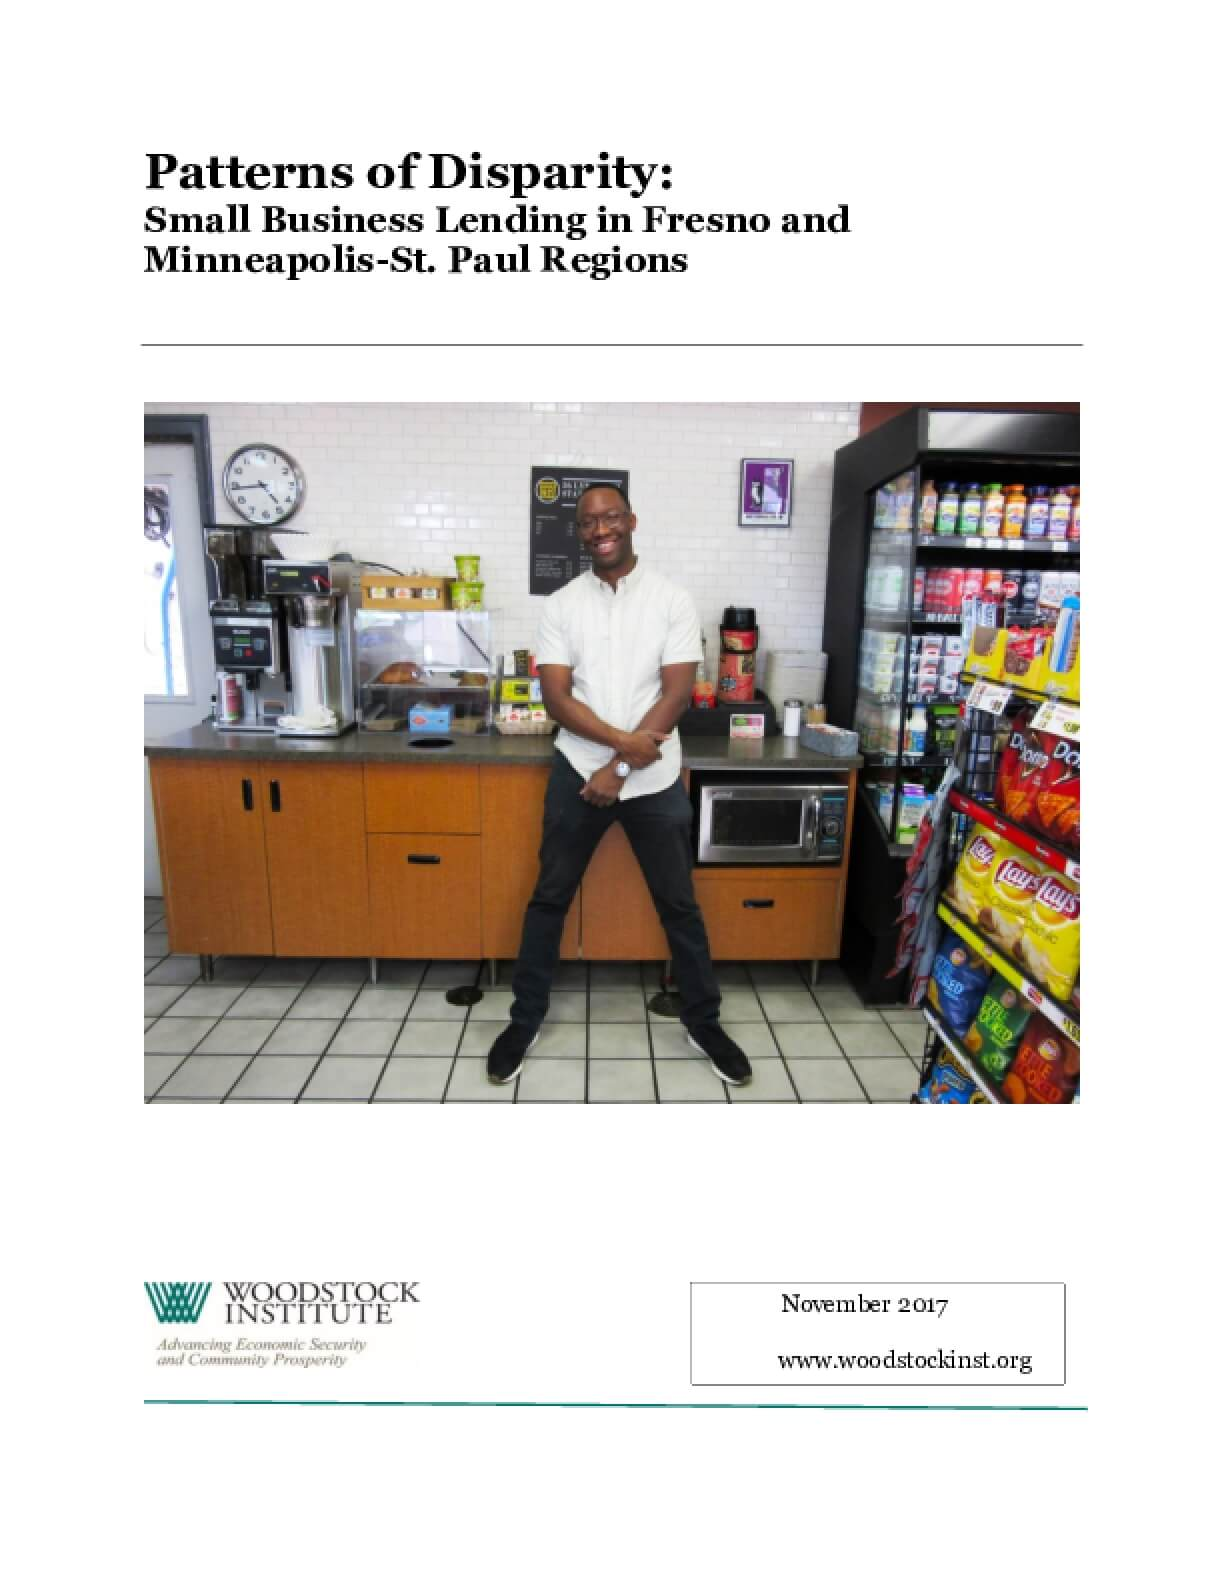 Patterns of Disparity: Small Business Lending in Fresno and Minneapolis-St. Paul Regions